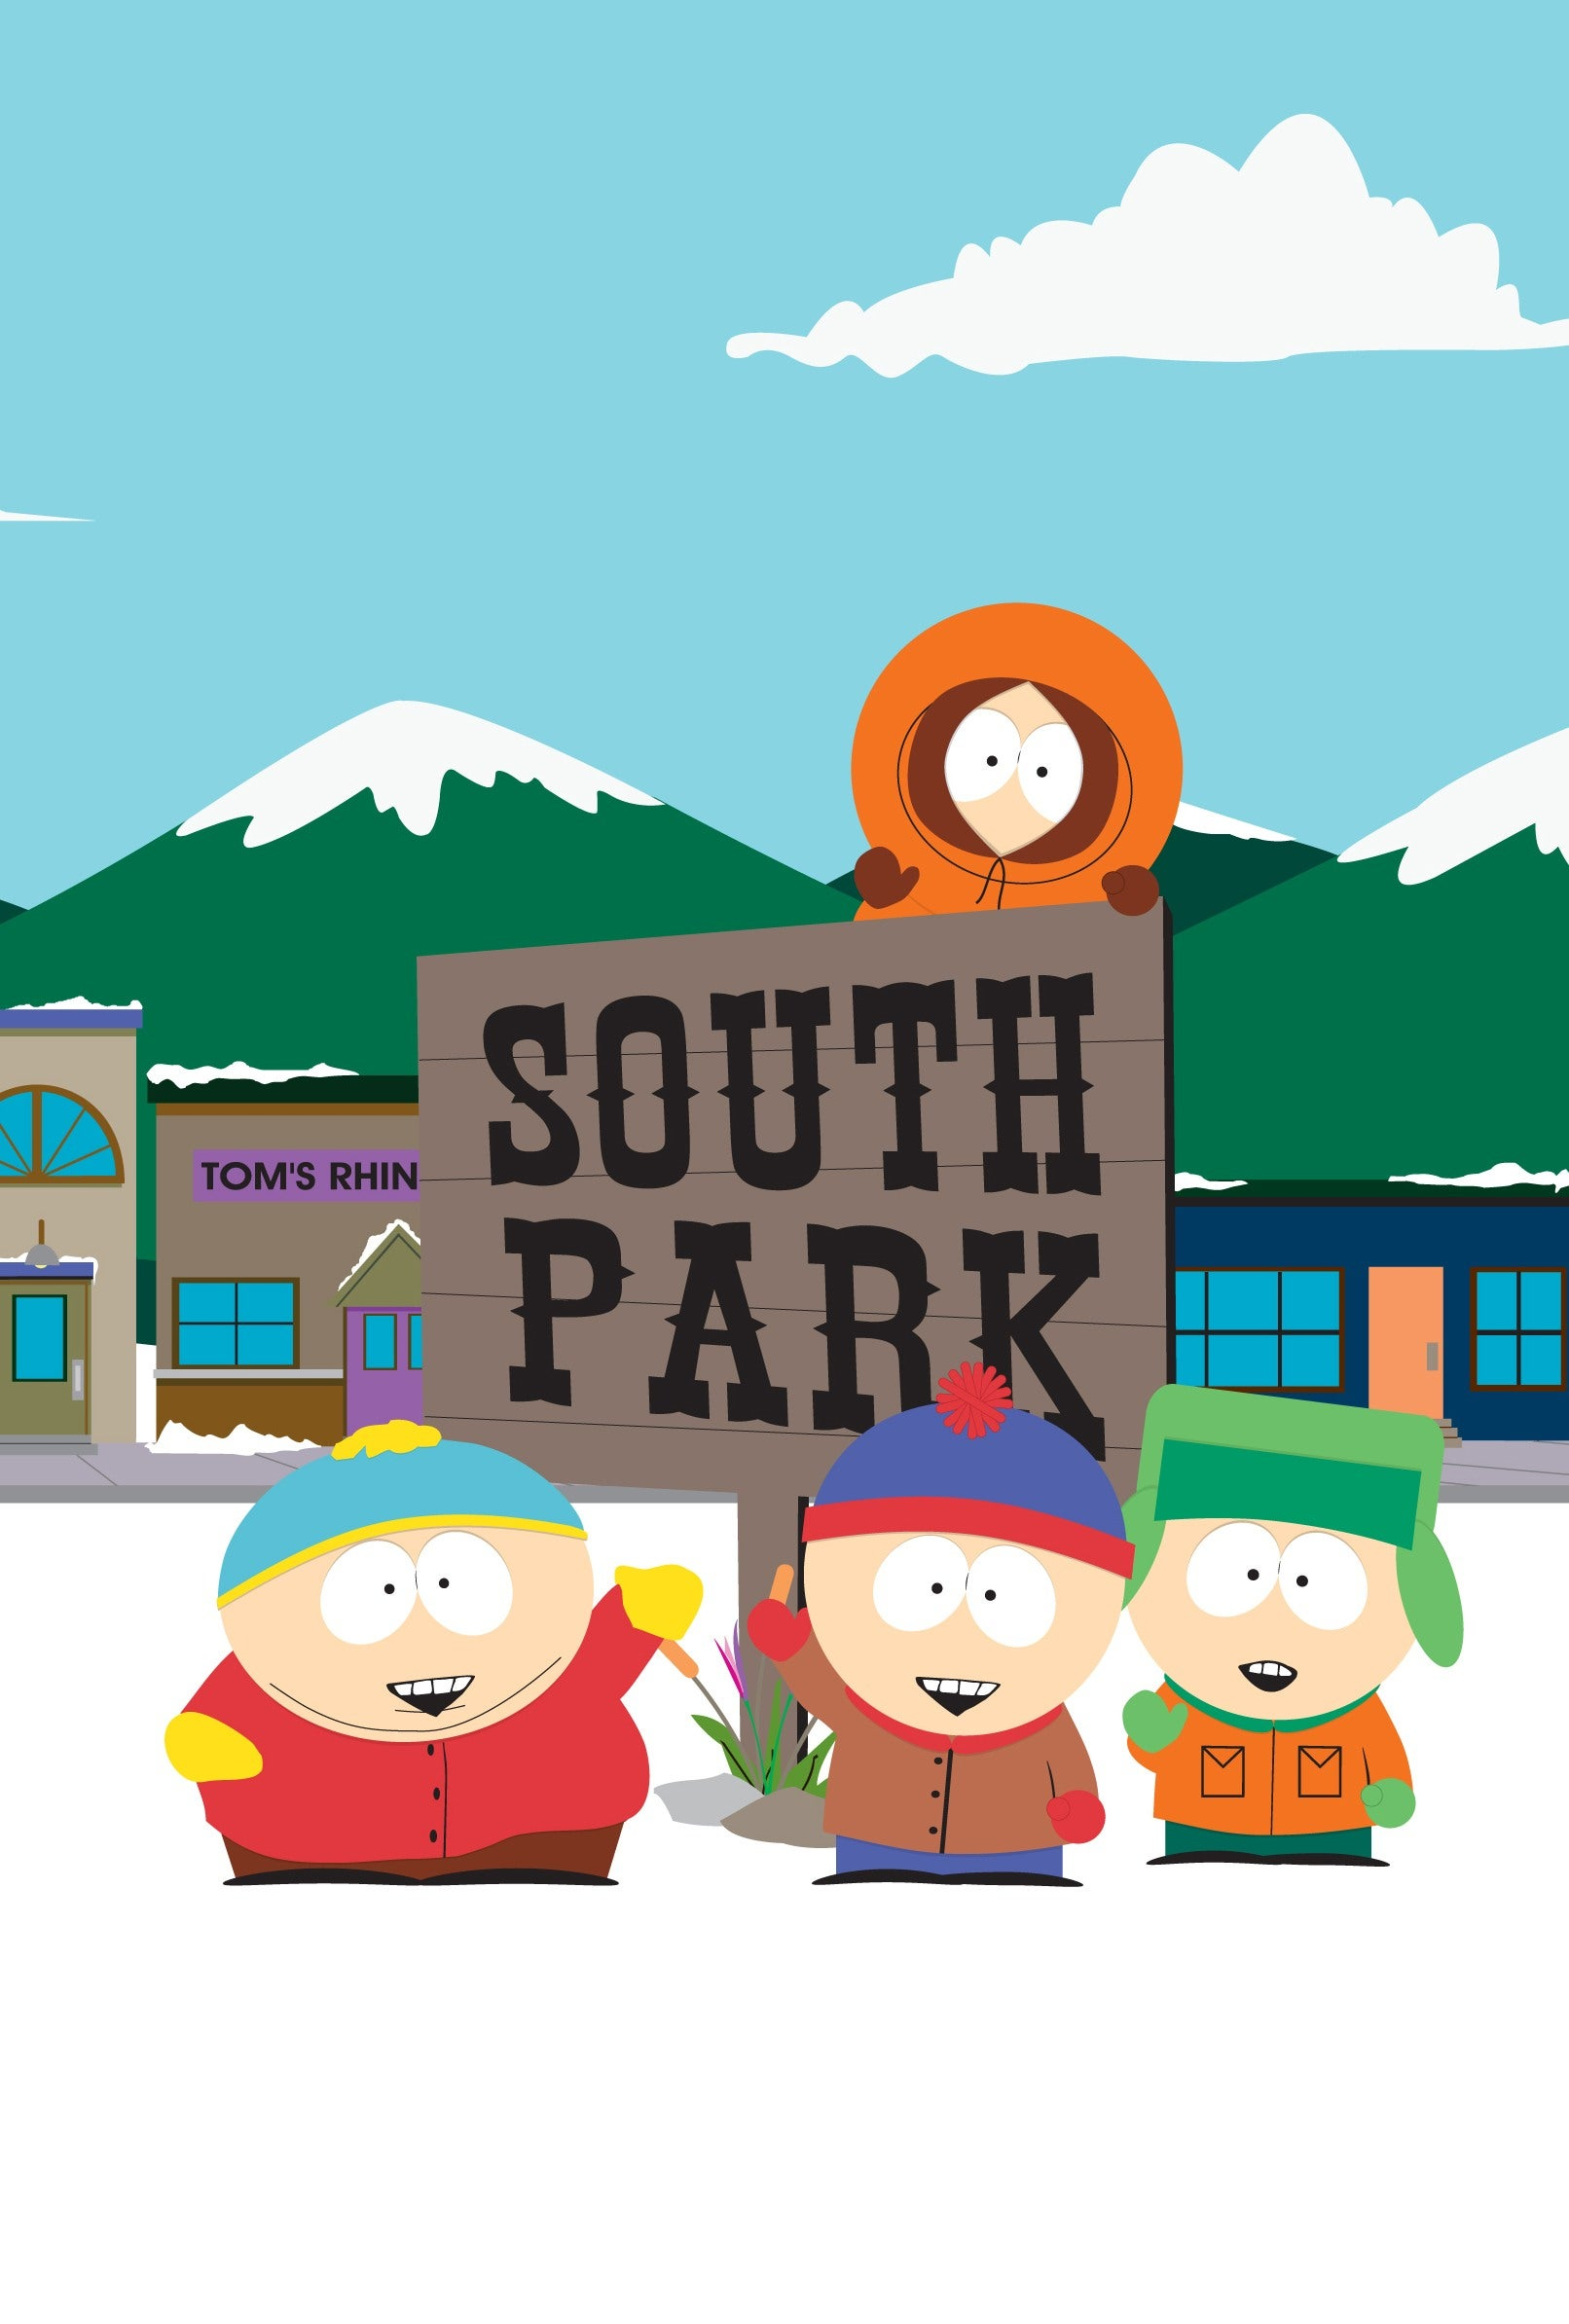 Video south park. Ign